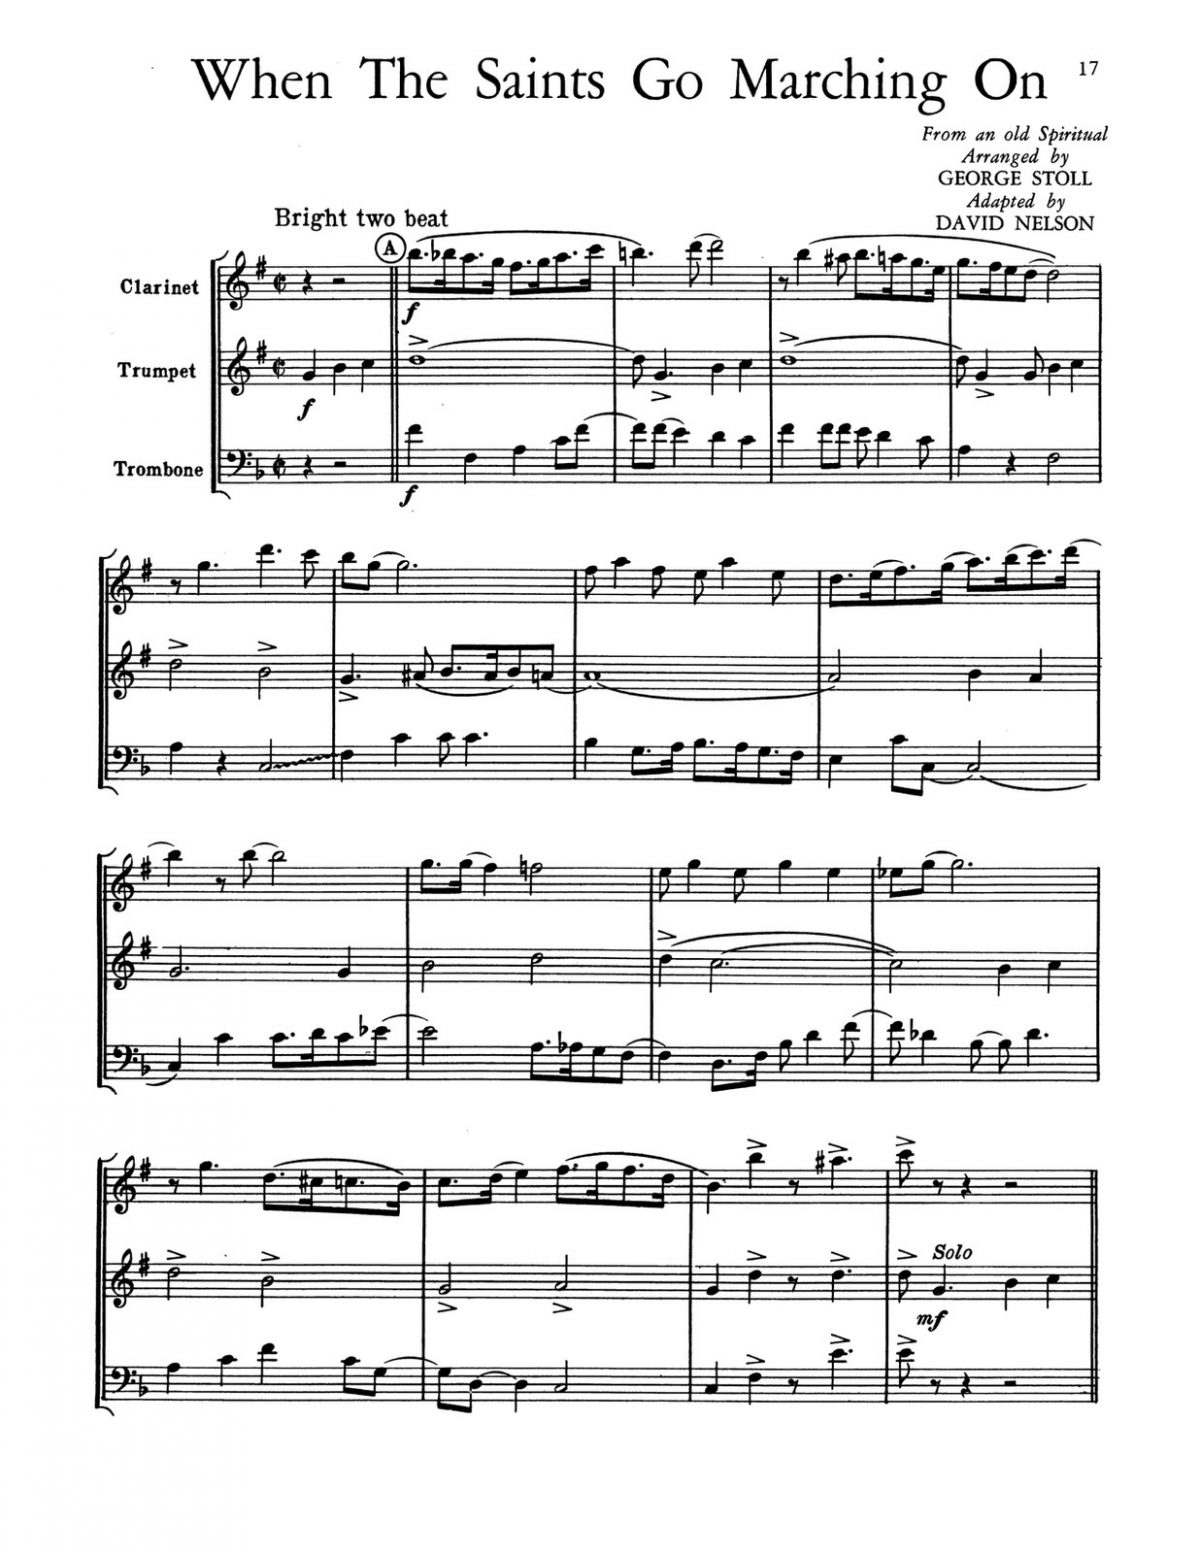 Levine, Dixieland Jazz Combo Book 1 (Score and Part)-p21